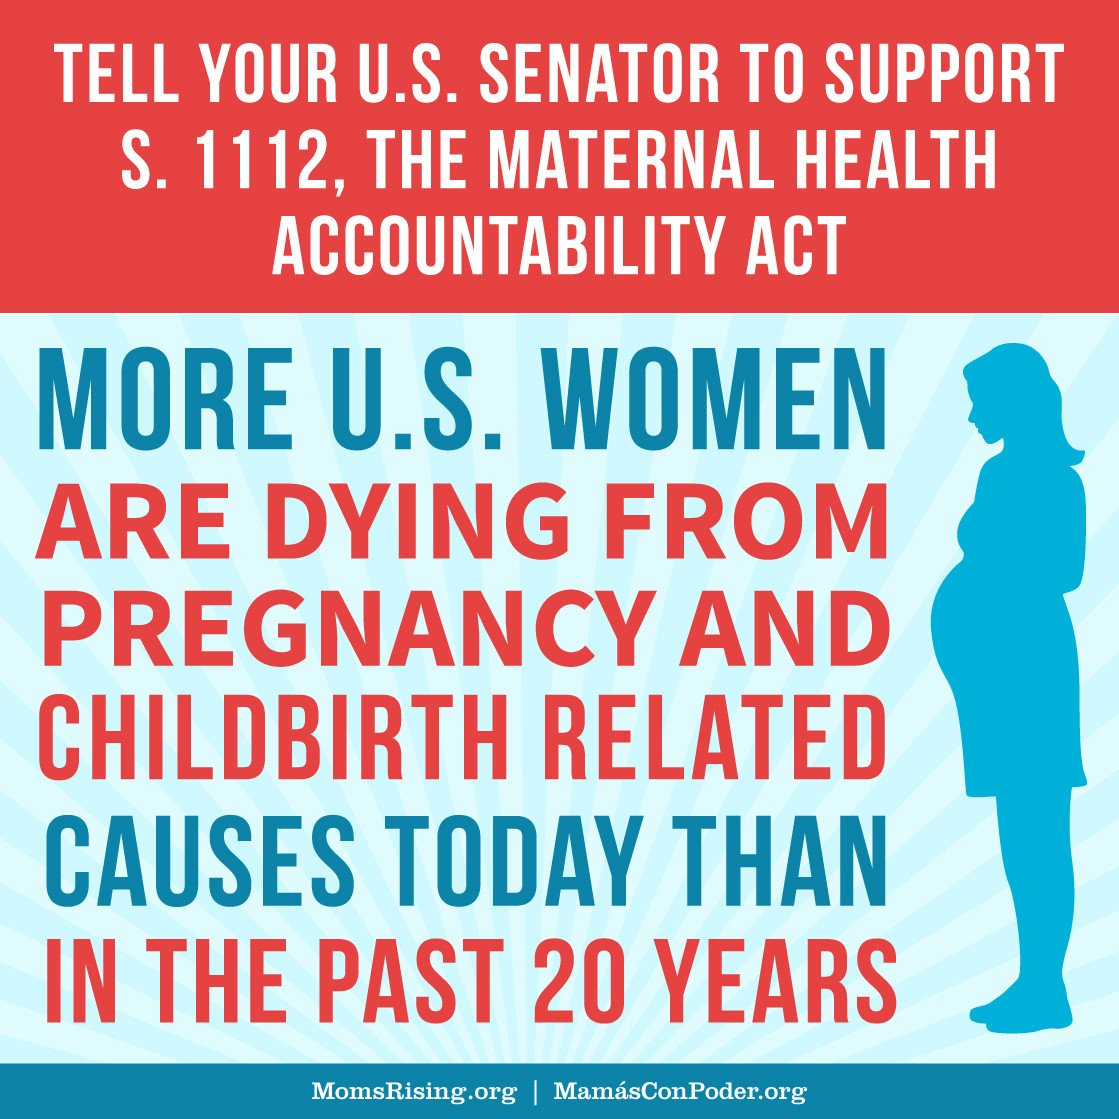 When we raise our voices, legislators listen! Which is why we need YOU to let Congress know that maternal health matters by signing our letter supporting #S1112 &  add#HR1318ressing our nation's rising maternal death rates. Sign now!  https://t.co/MPDKlpFdb7#MaternalJustice